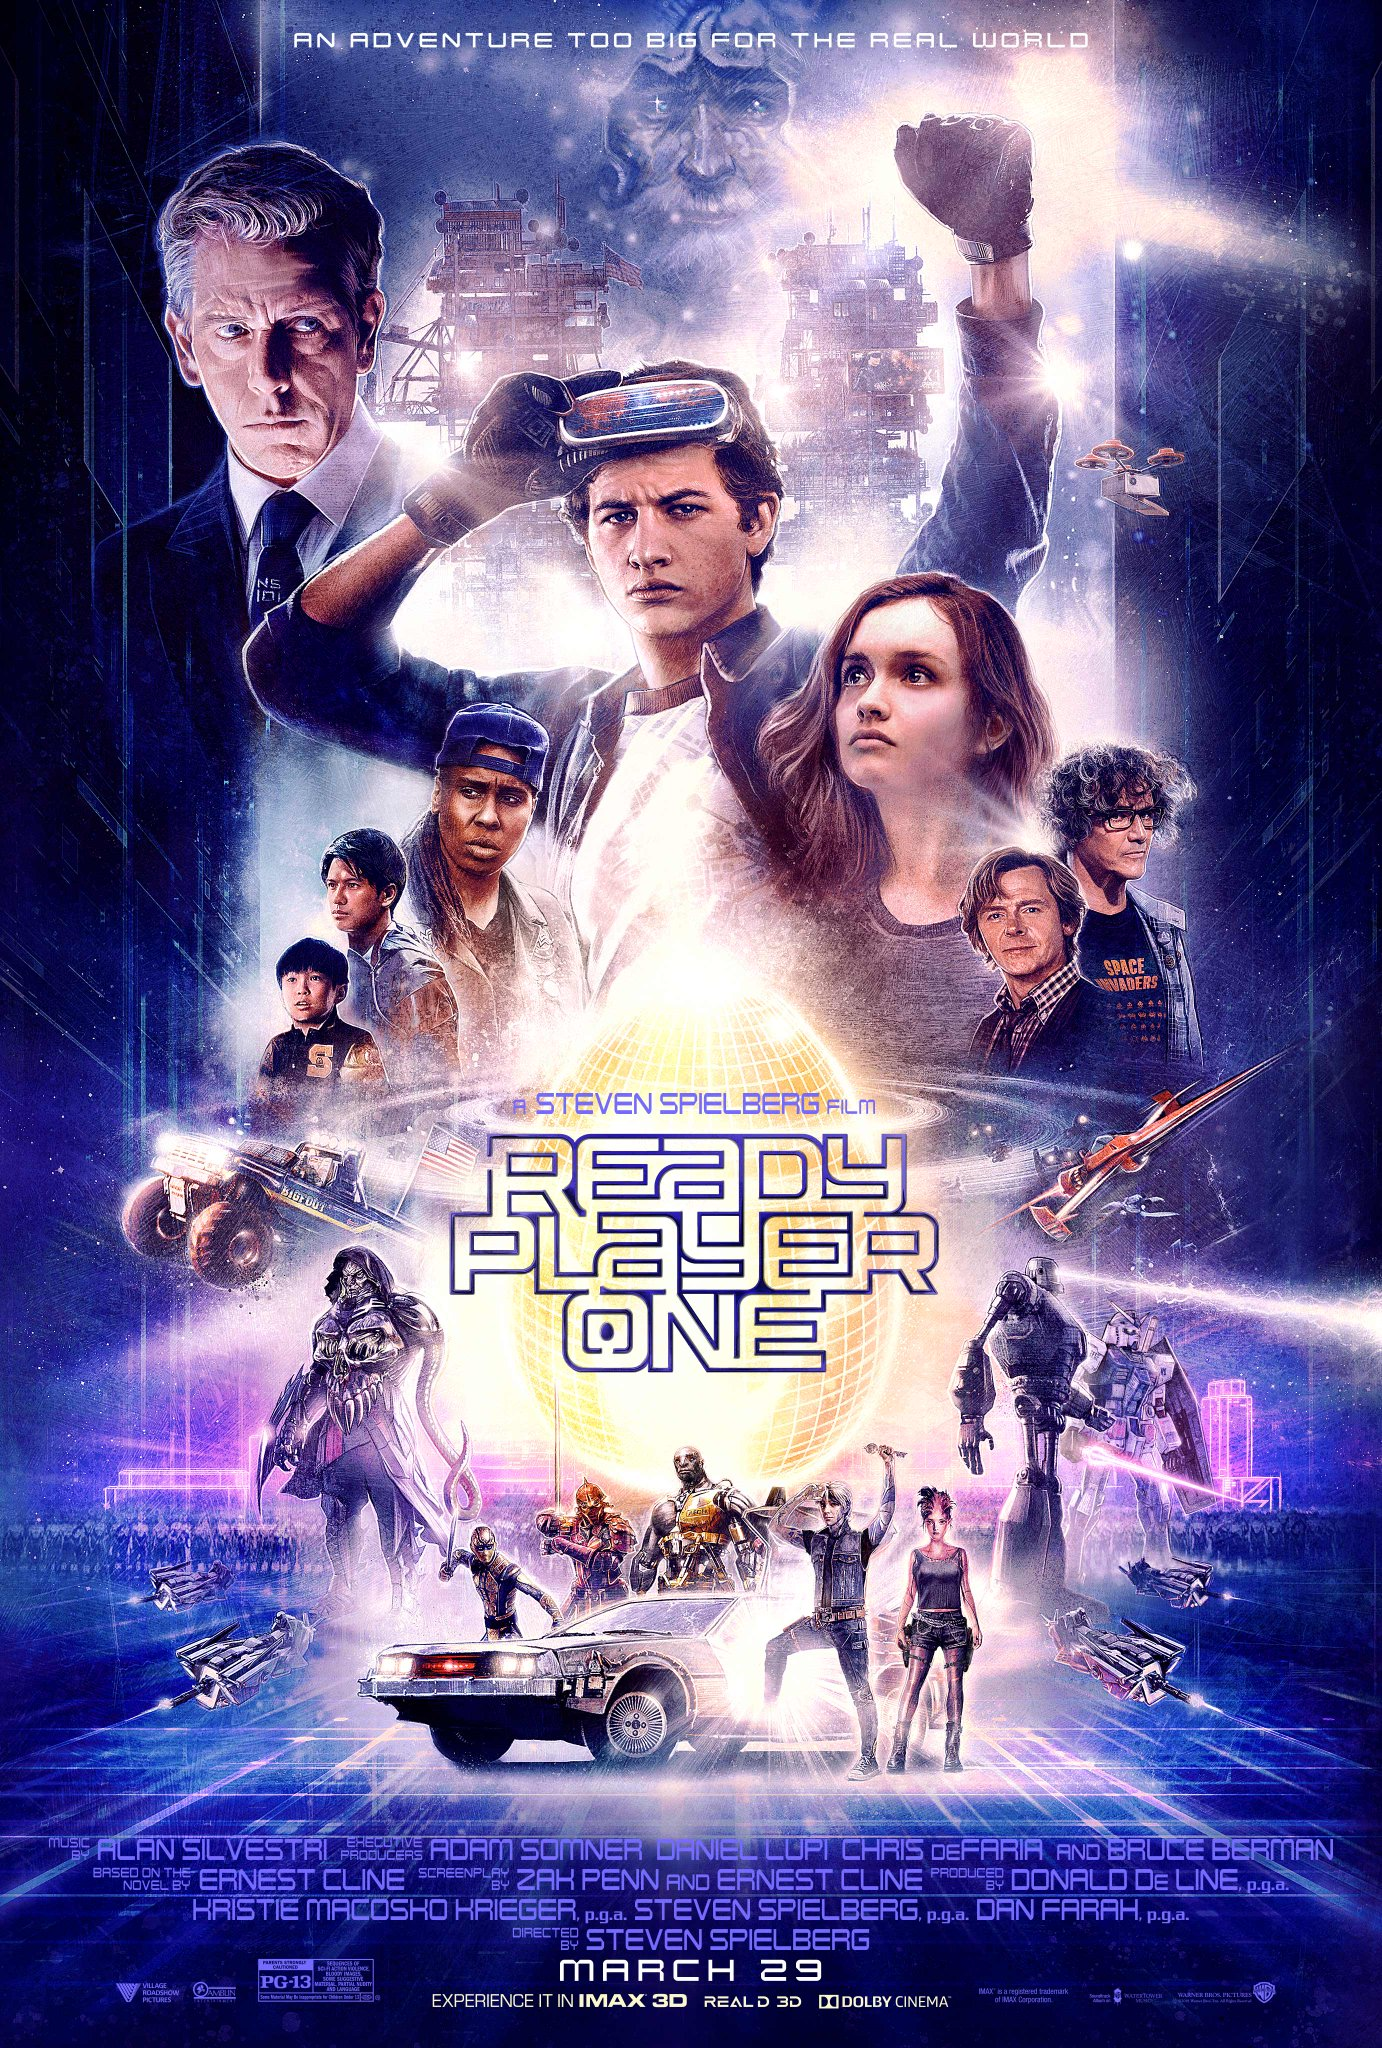 Ready Player One poster | A Steven Spielberg Film